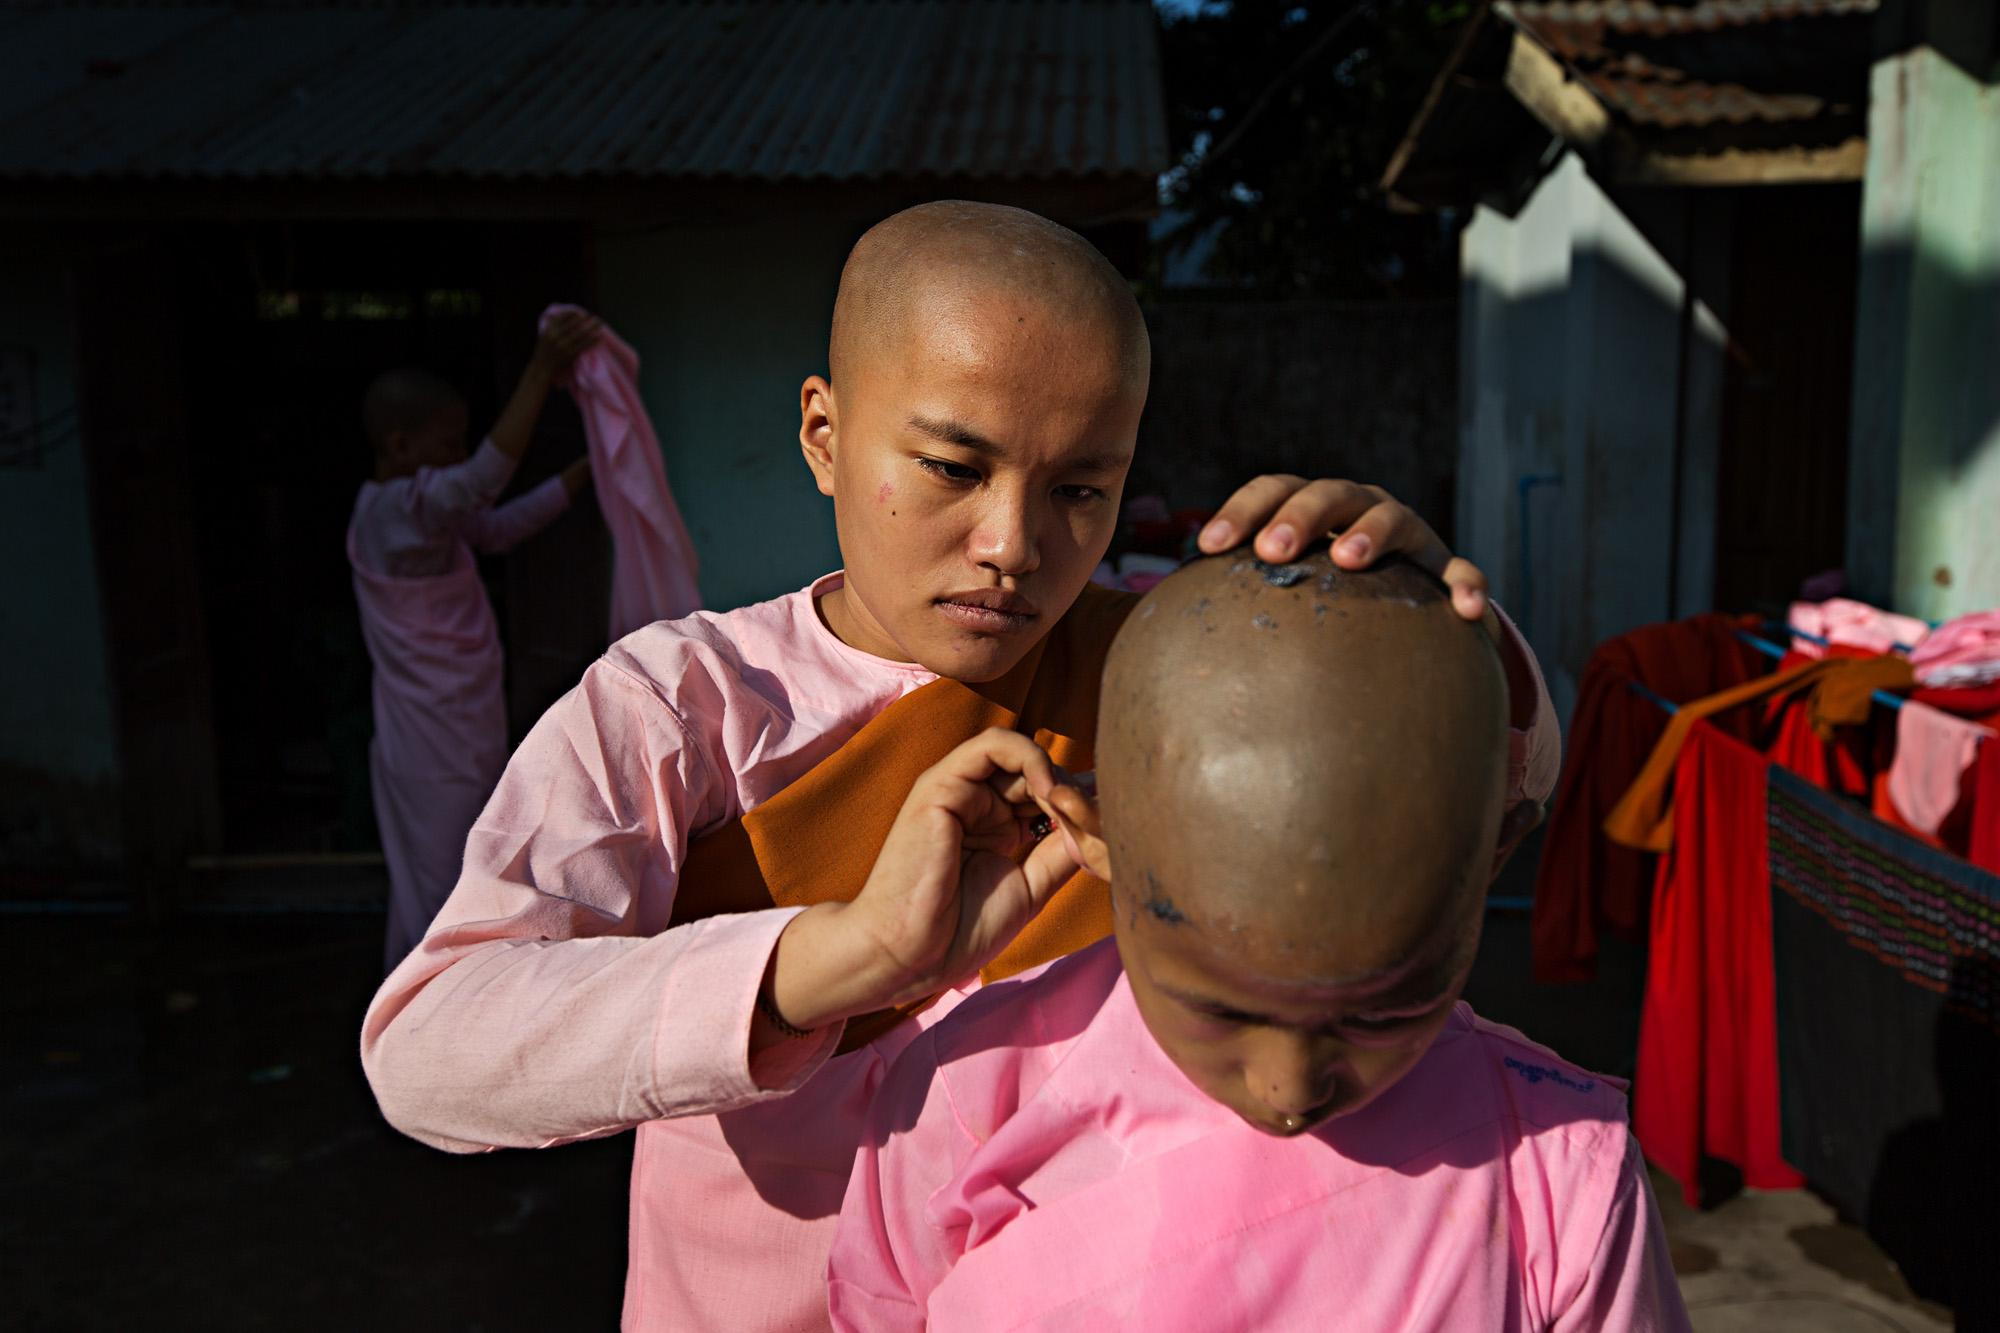 Novice Buddhist nuns shave their heads at a nunnery outside of Yangon, Myanmar. Shaving for the first time is a scary and vulnerable time for young nuns and they try to help each other through the experience. Nuns devote their lives to the Buddha's teaching just like monks, but do not have the same status enjoyed by their male counterparts.